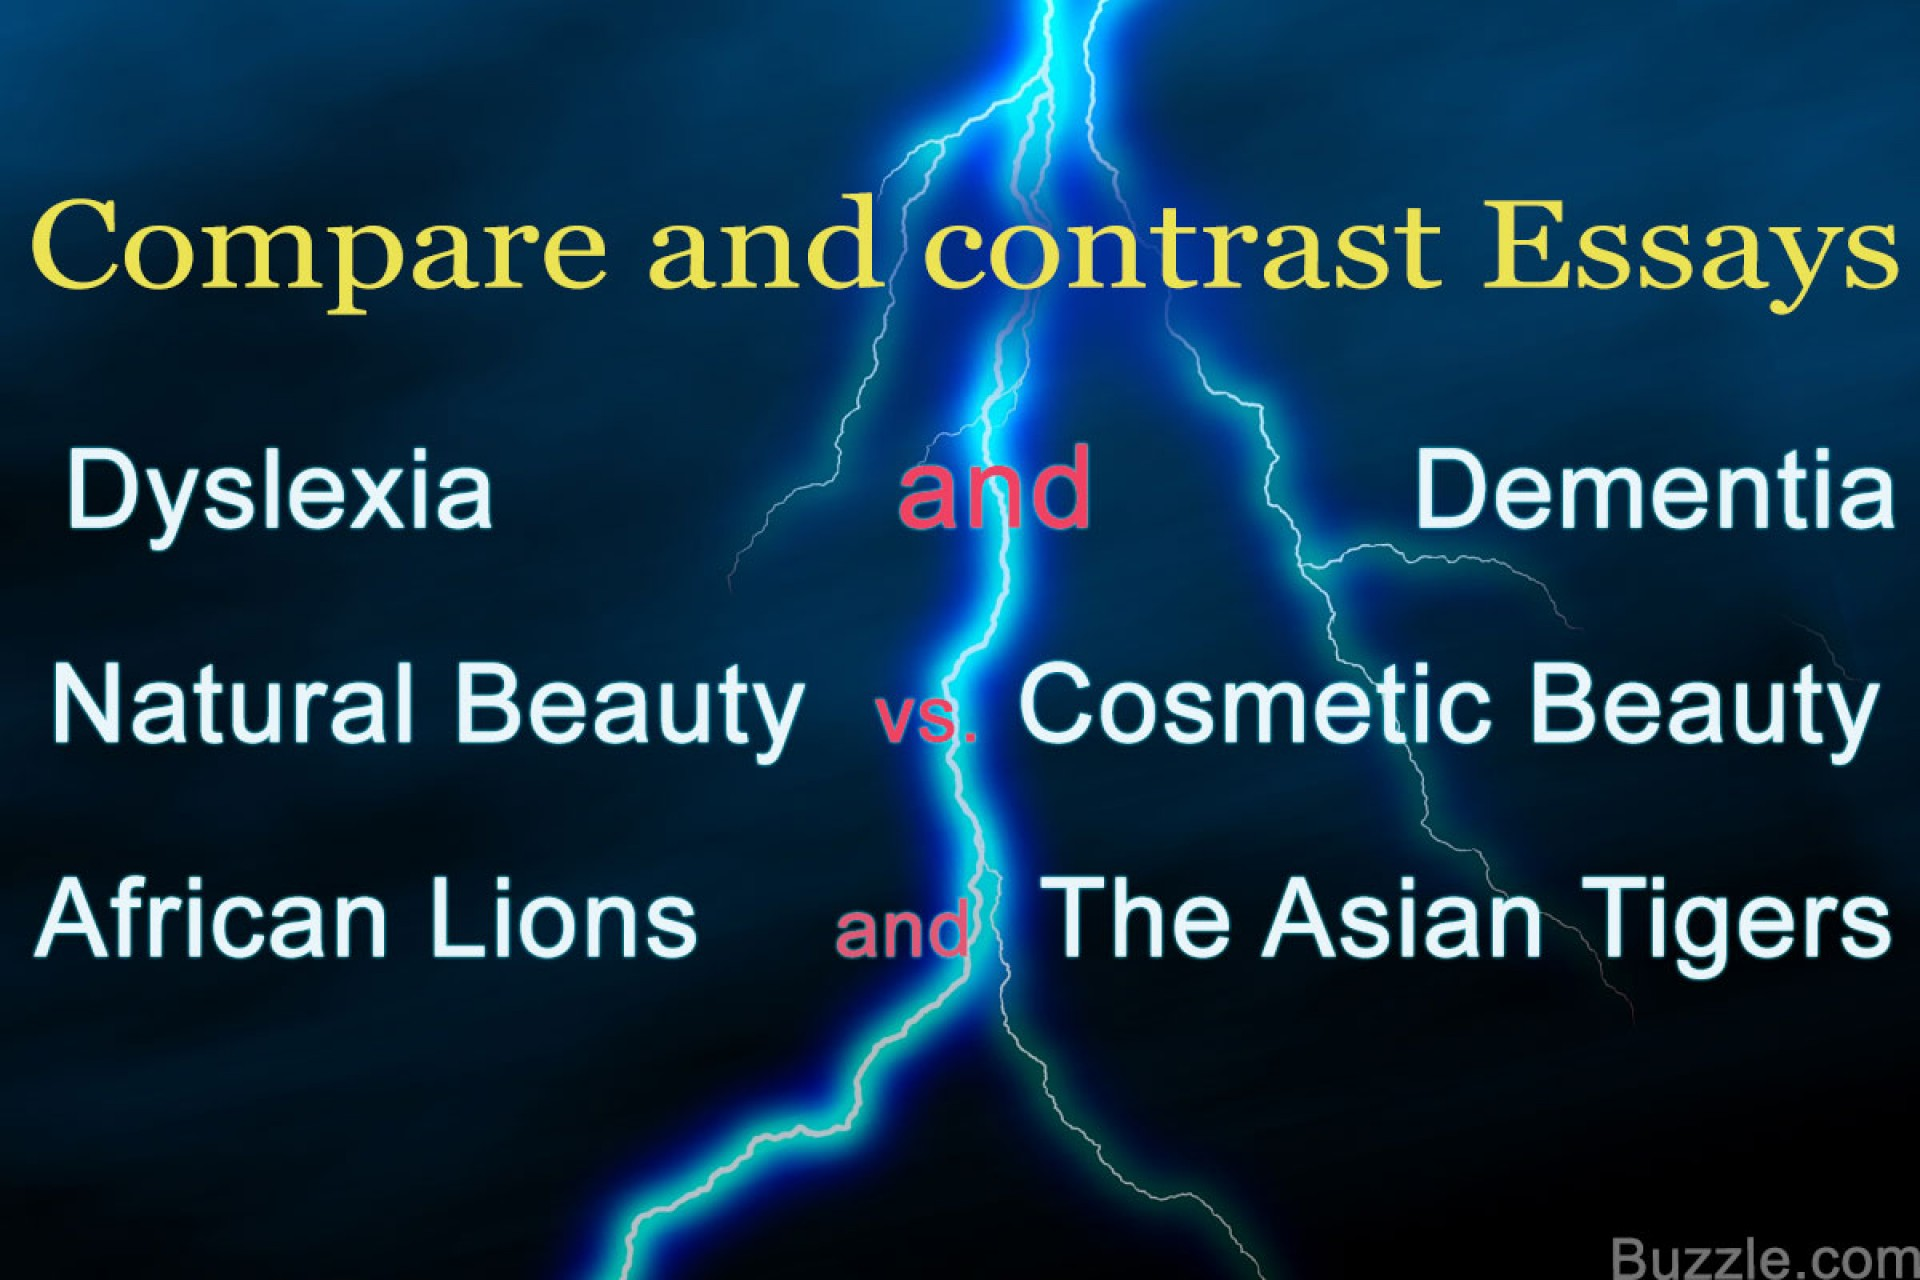 001 Compare Contrast Topics List Of And Essay Fantastic Easy For College Students Sports 1920